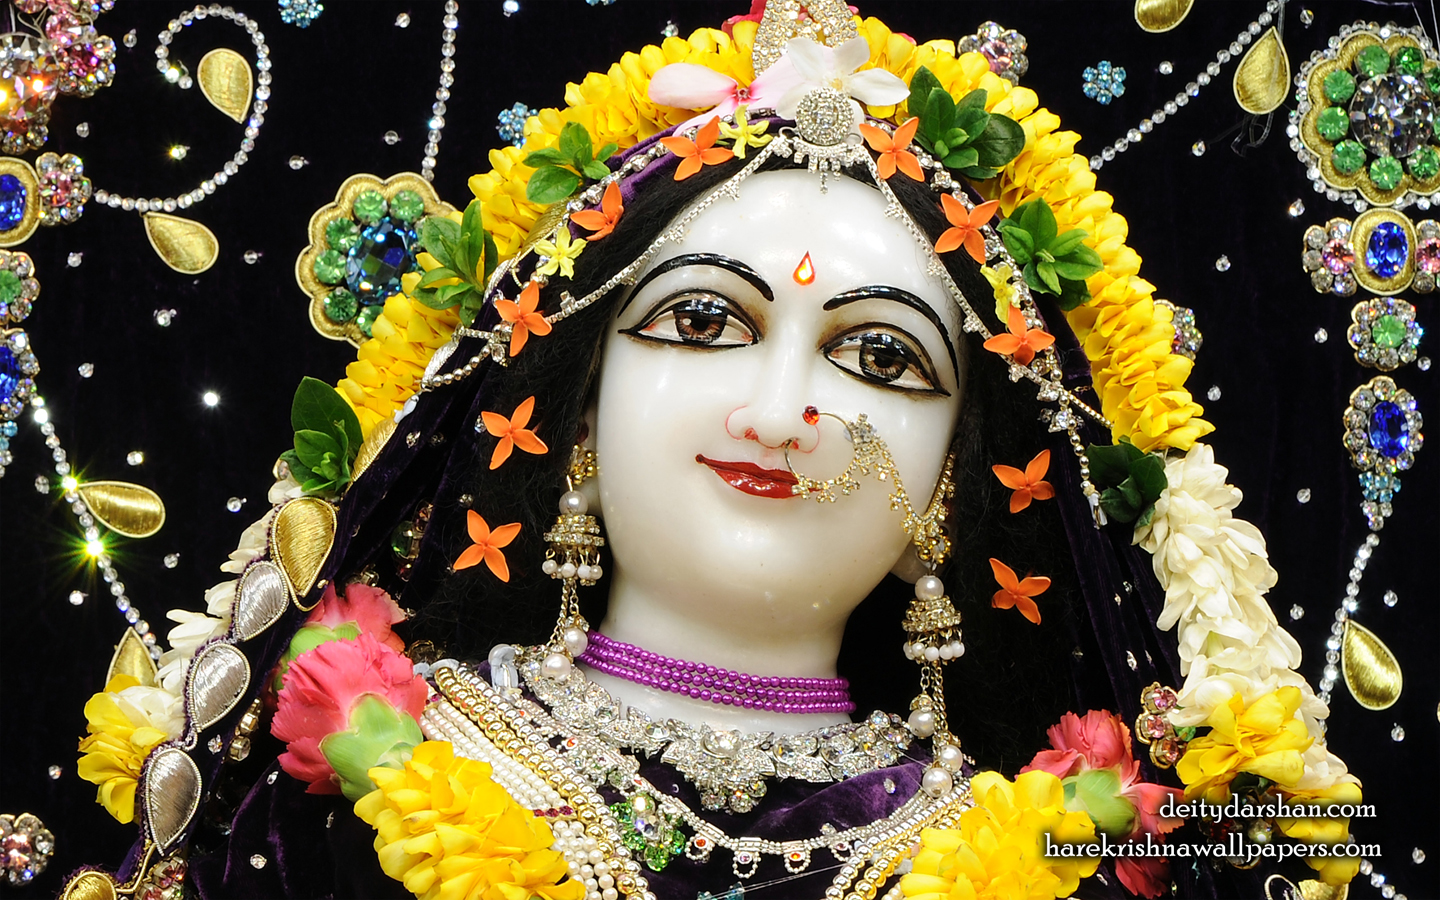 Srimati Radharani Close up Wallpaper (090) Size 1440x900 Download